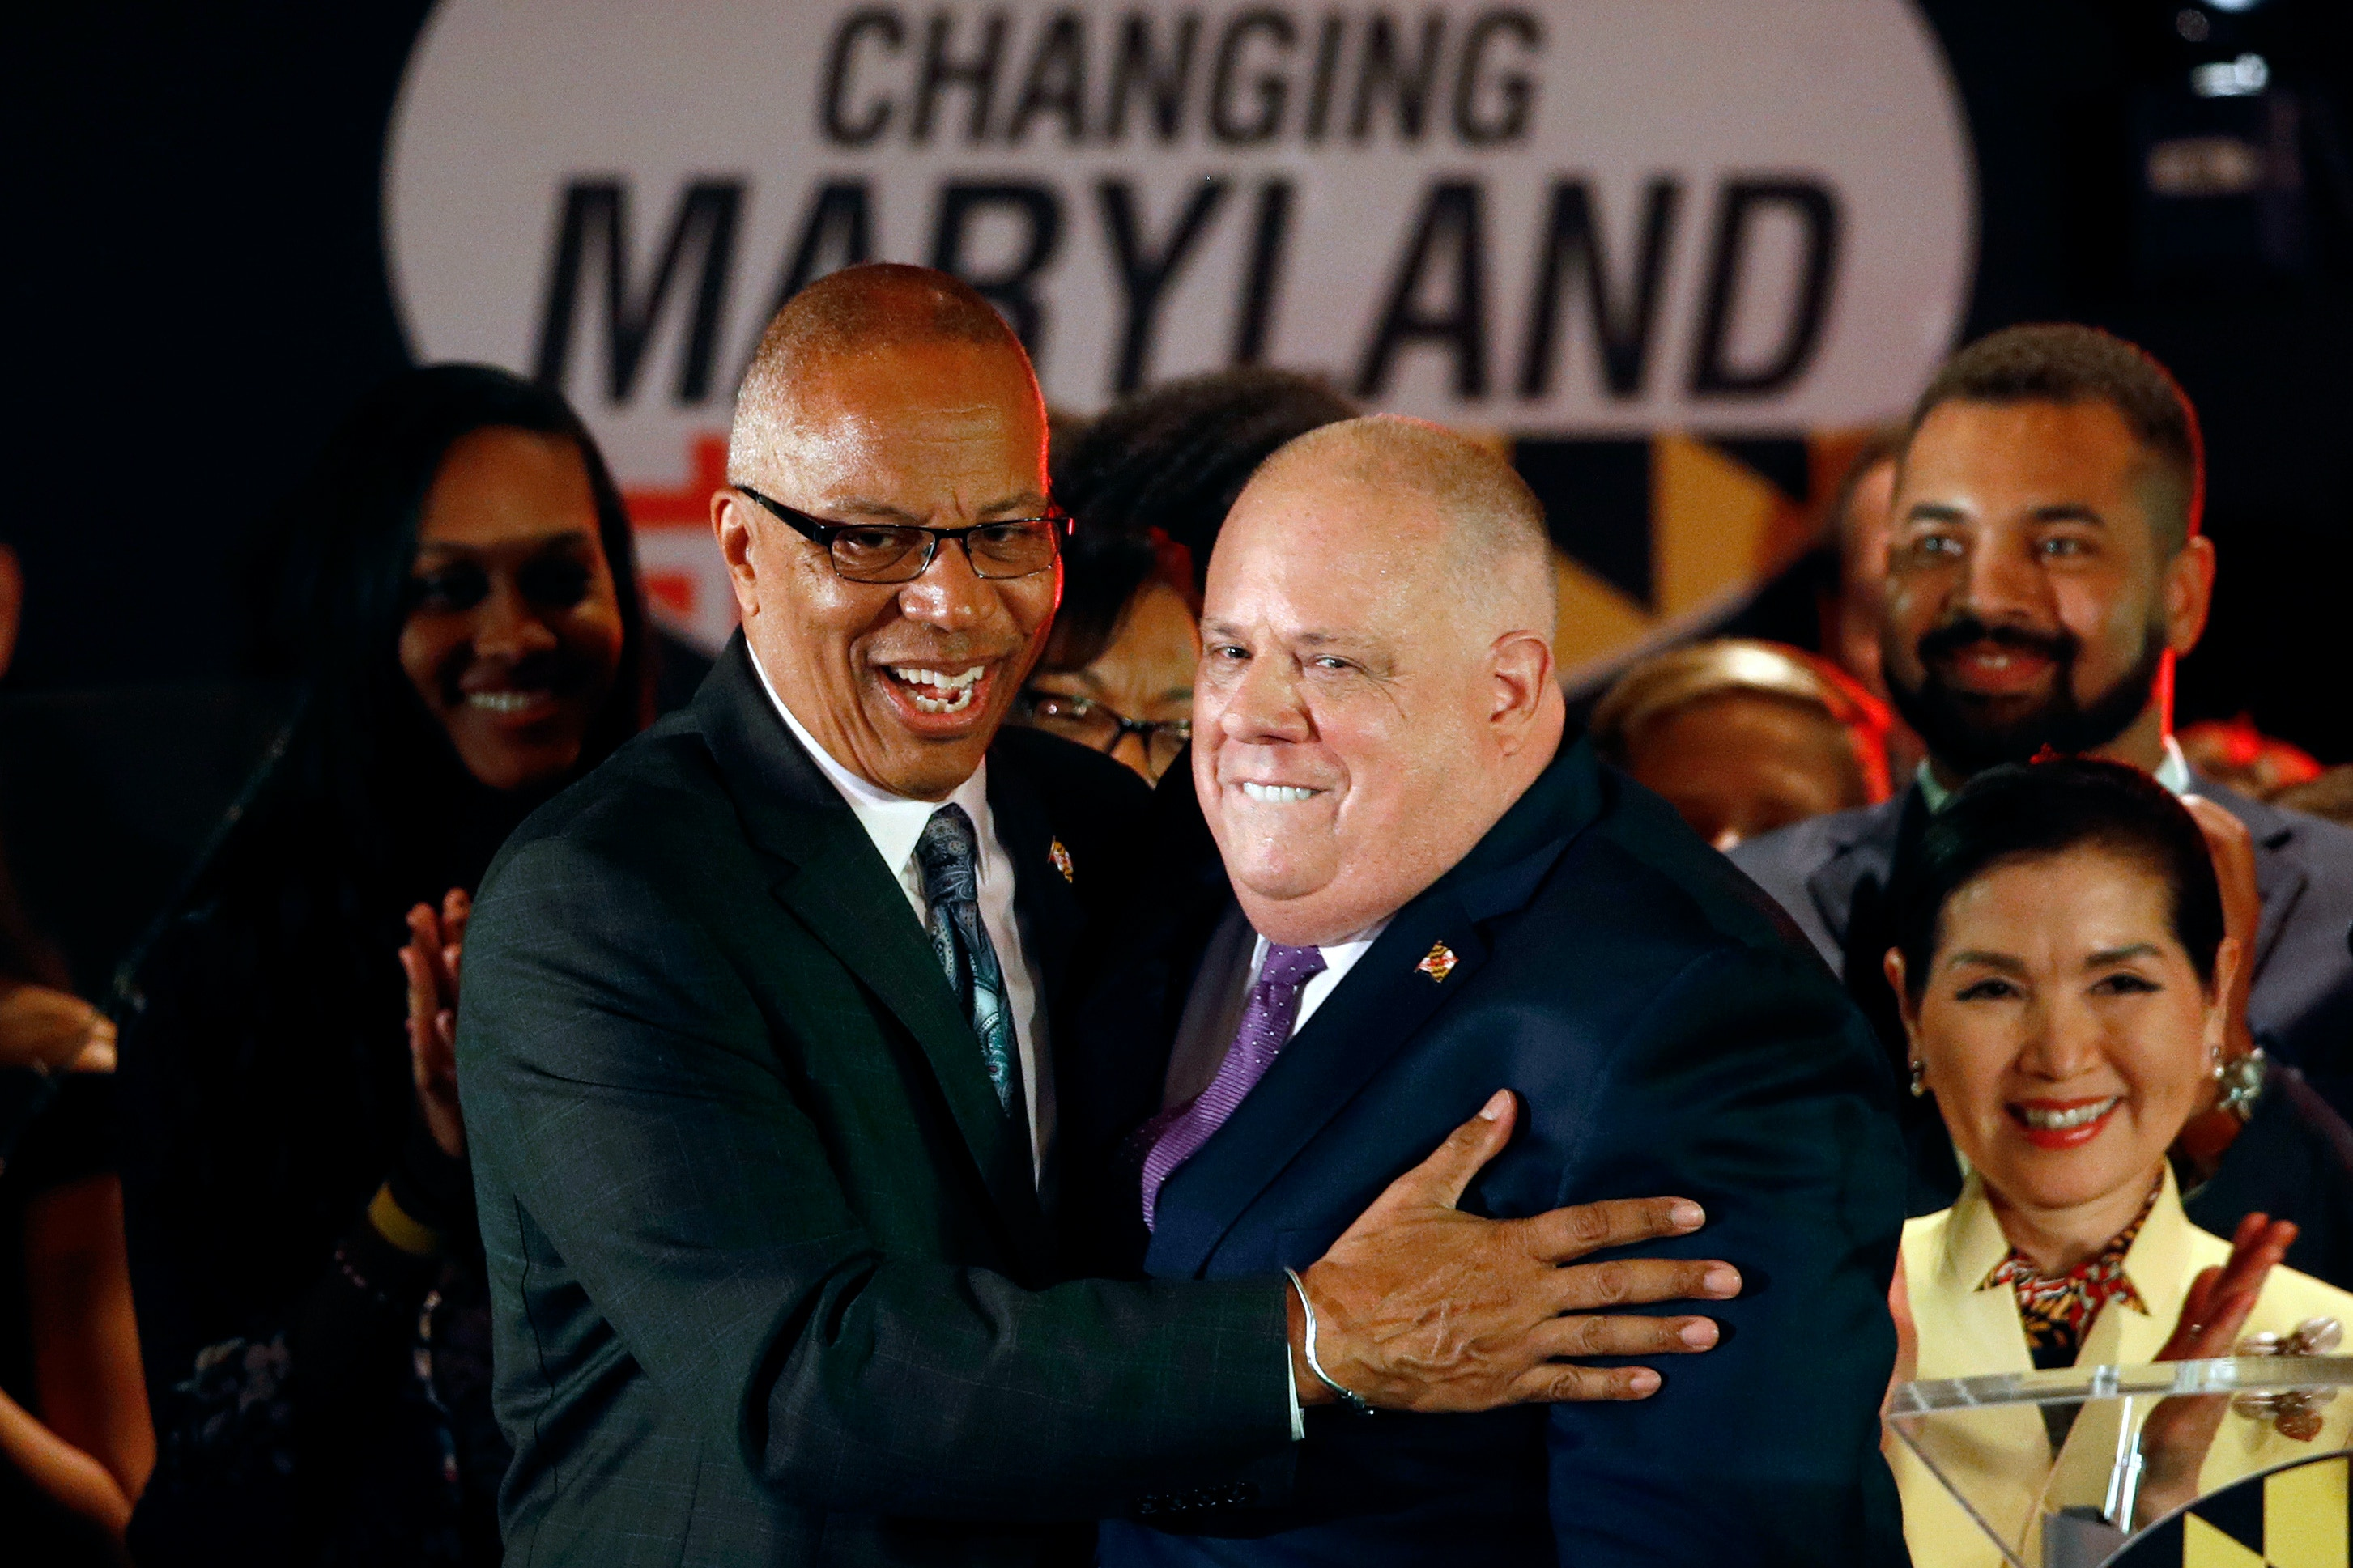 Maryland Gov. Larry Hogan, right, celebrates with Lt. Gov. Boyd Rutherford at an election night party, Tuesday, Nov. 6, 2018, in Annapolis, Md. Hogan earned a second term after defeating Democratic opponent Ben Jealous. (AP Photo/Patrick Semansky)